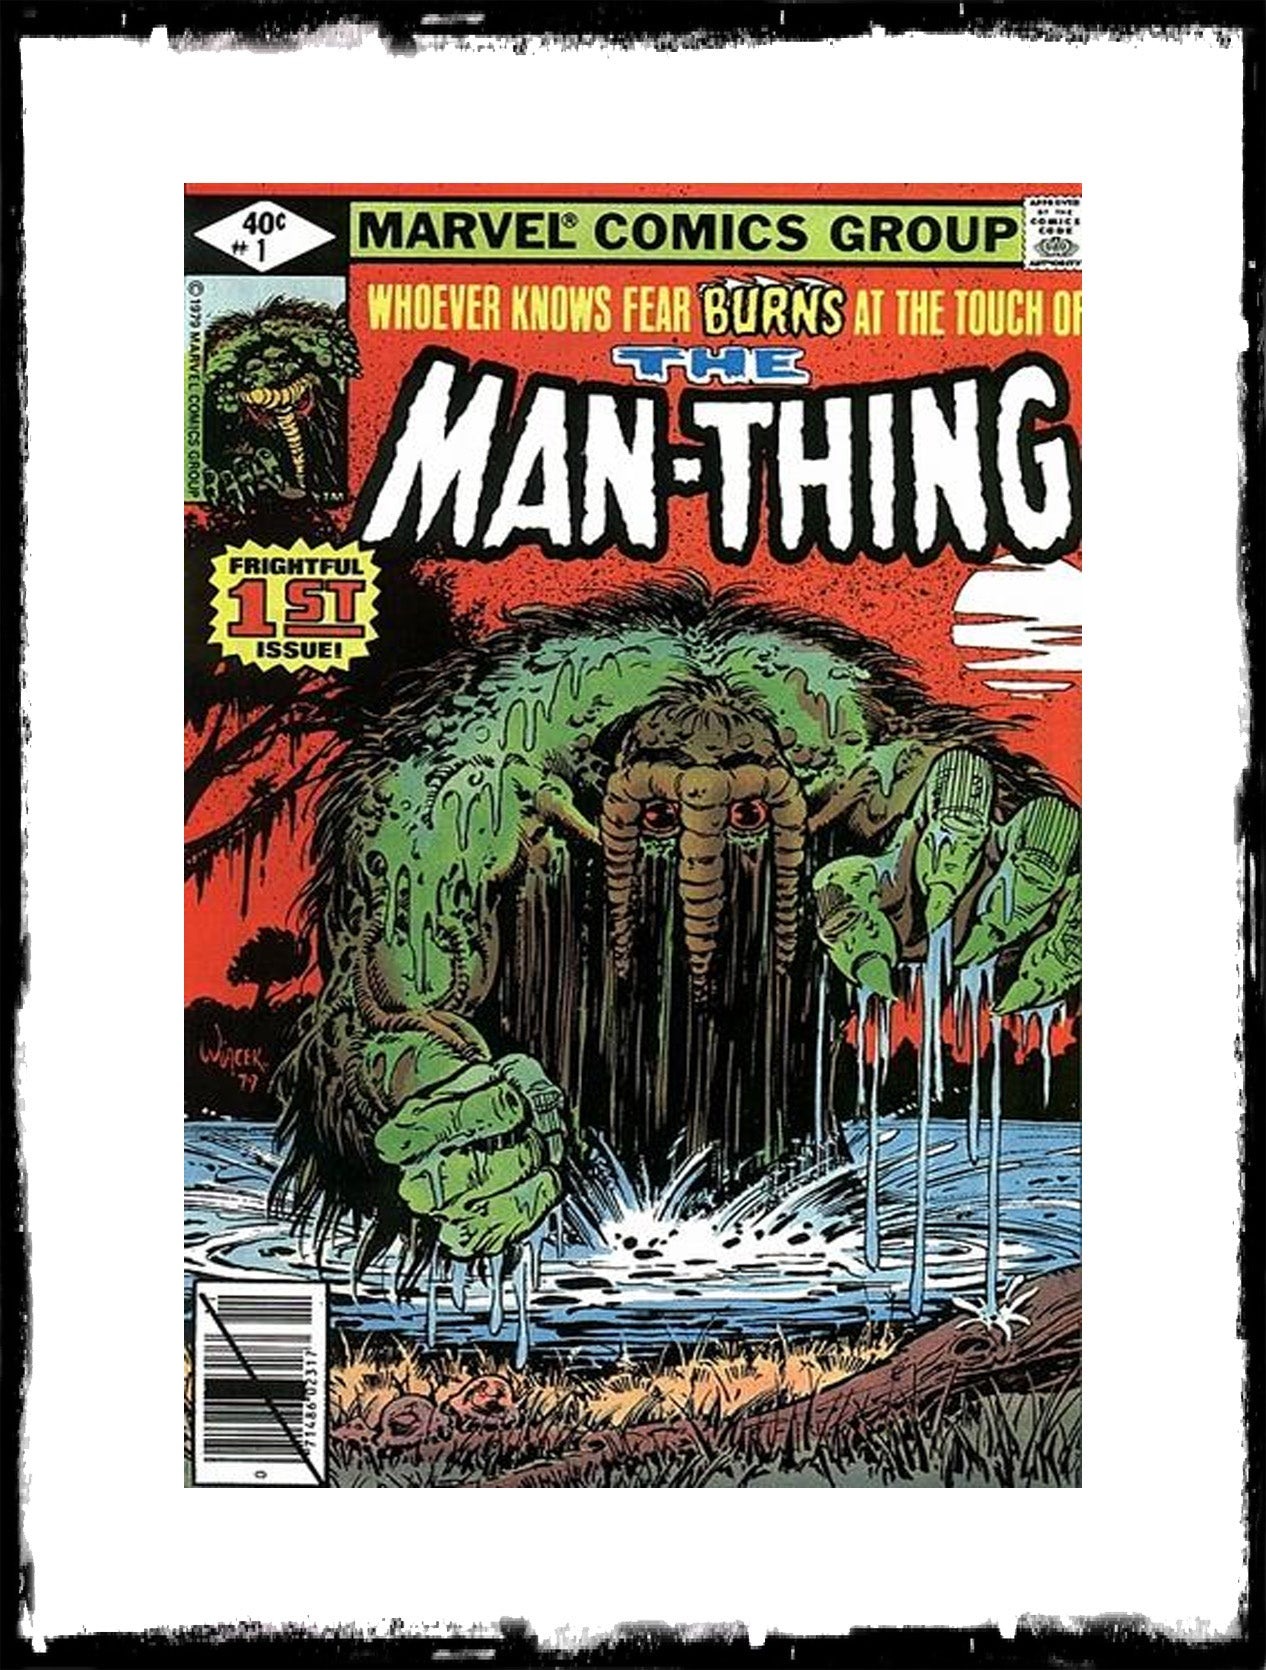 MAN-THING - #1 (1979 - VF+/NM)